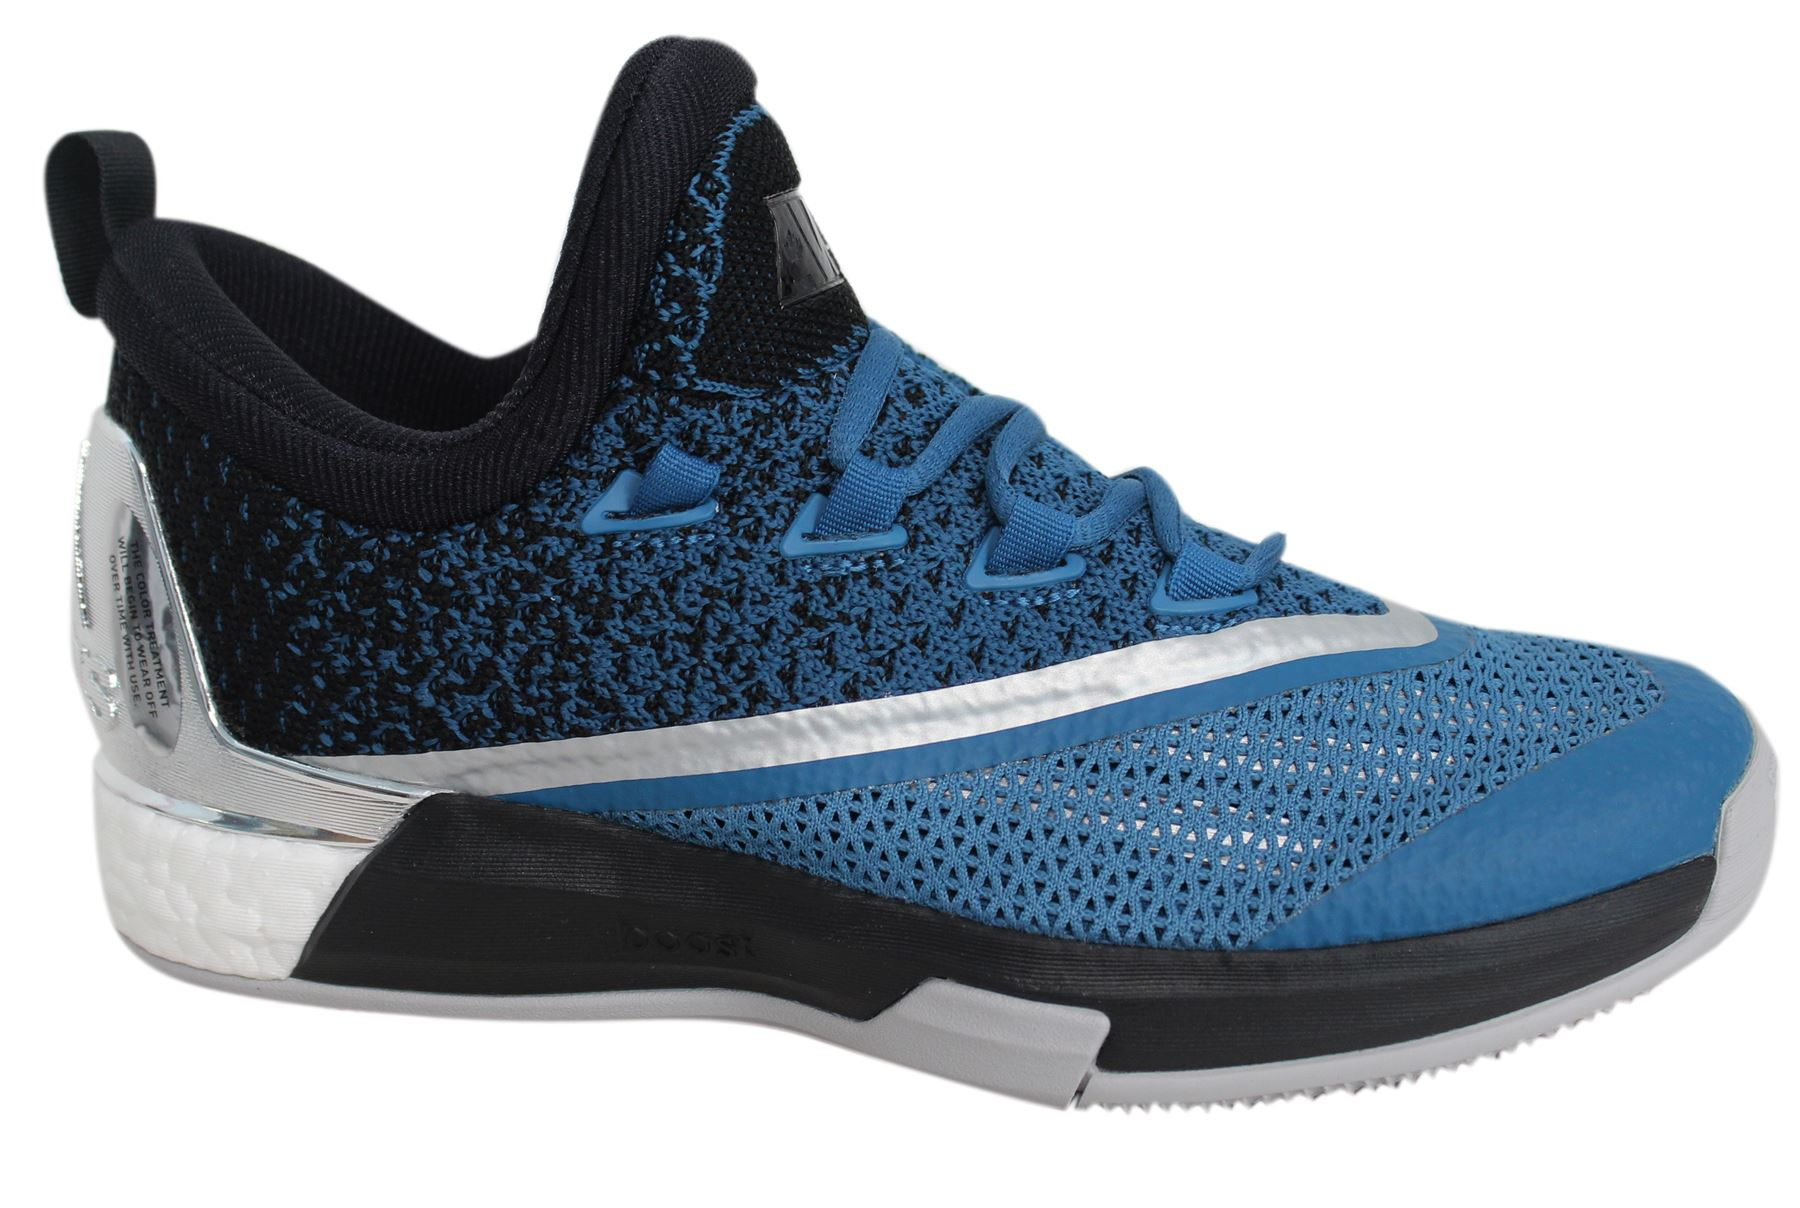 low priced 0c9a2 d5d67 ... adidas crazylight boost 1